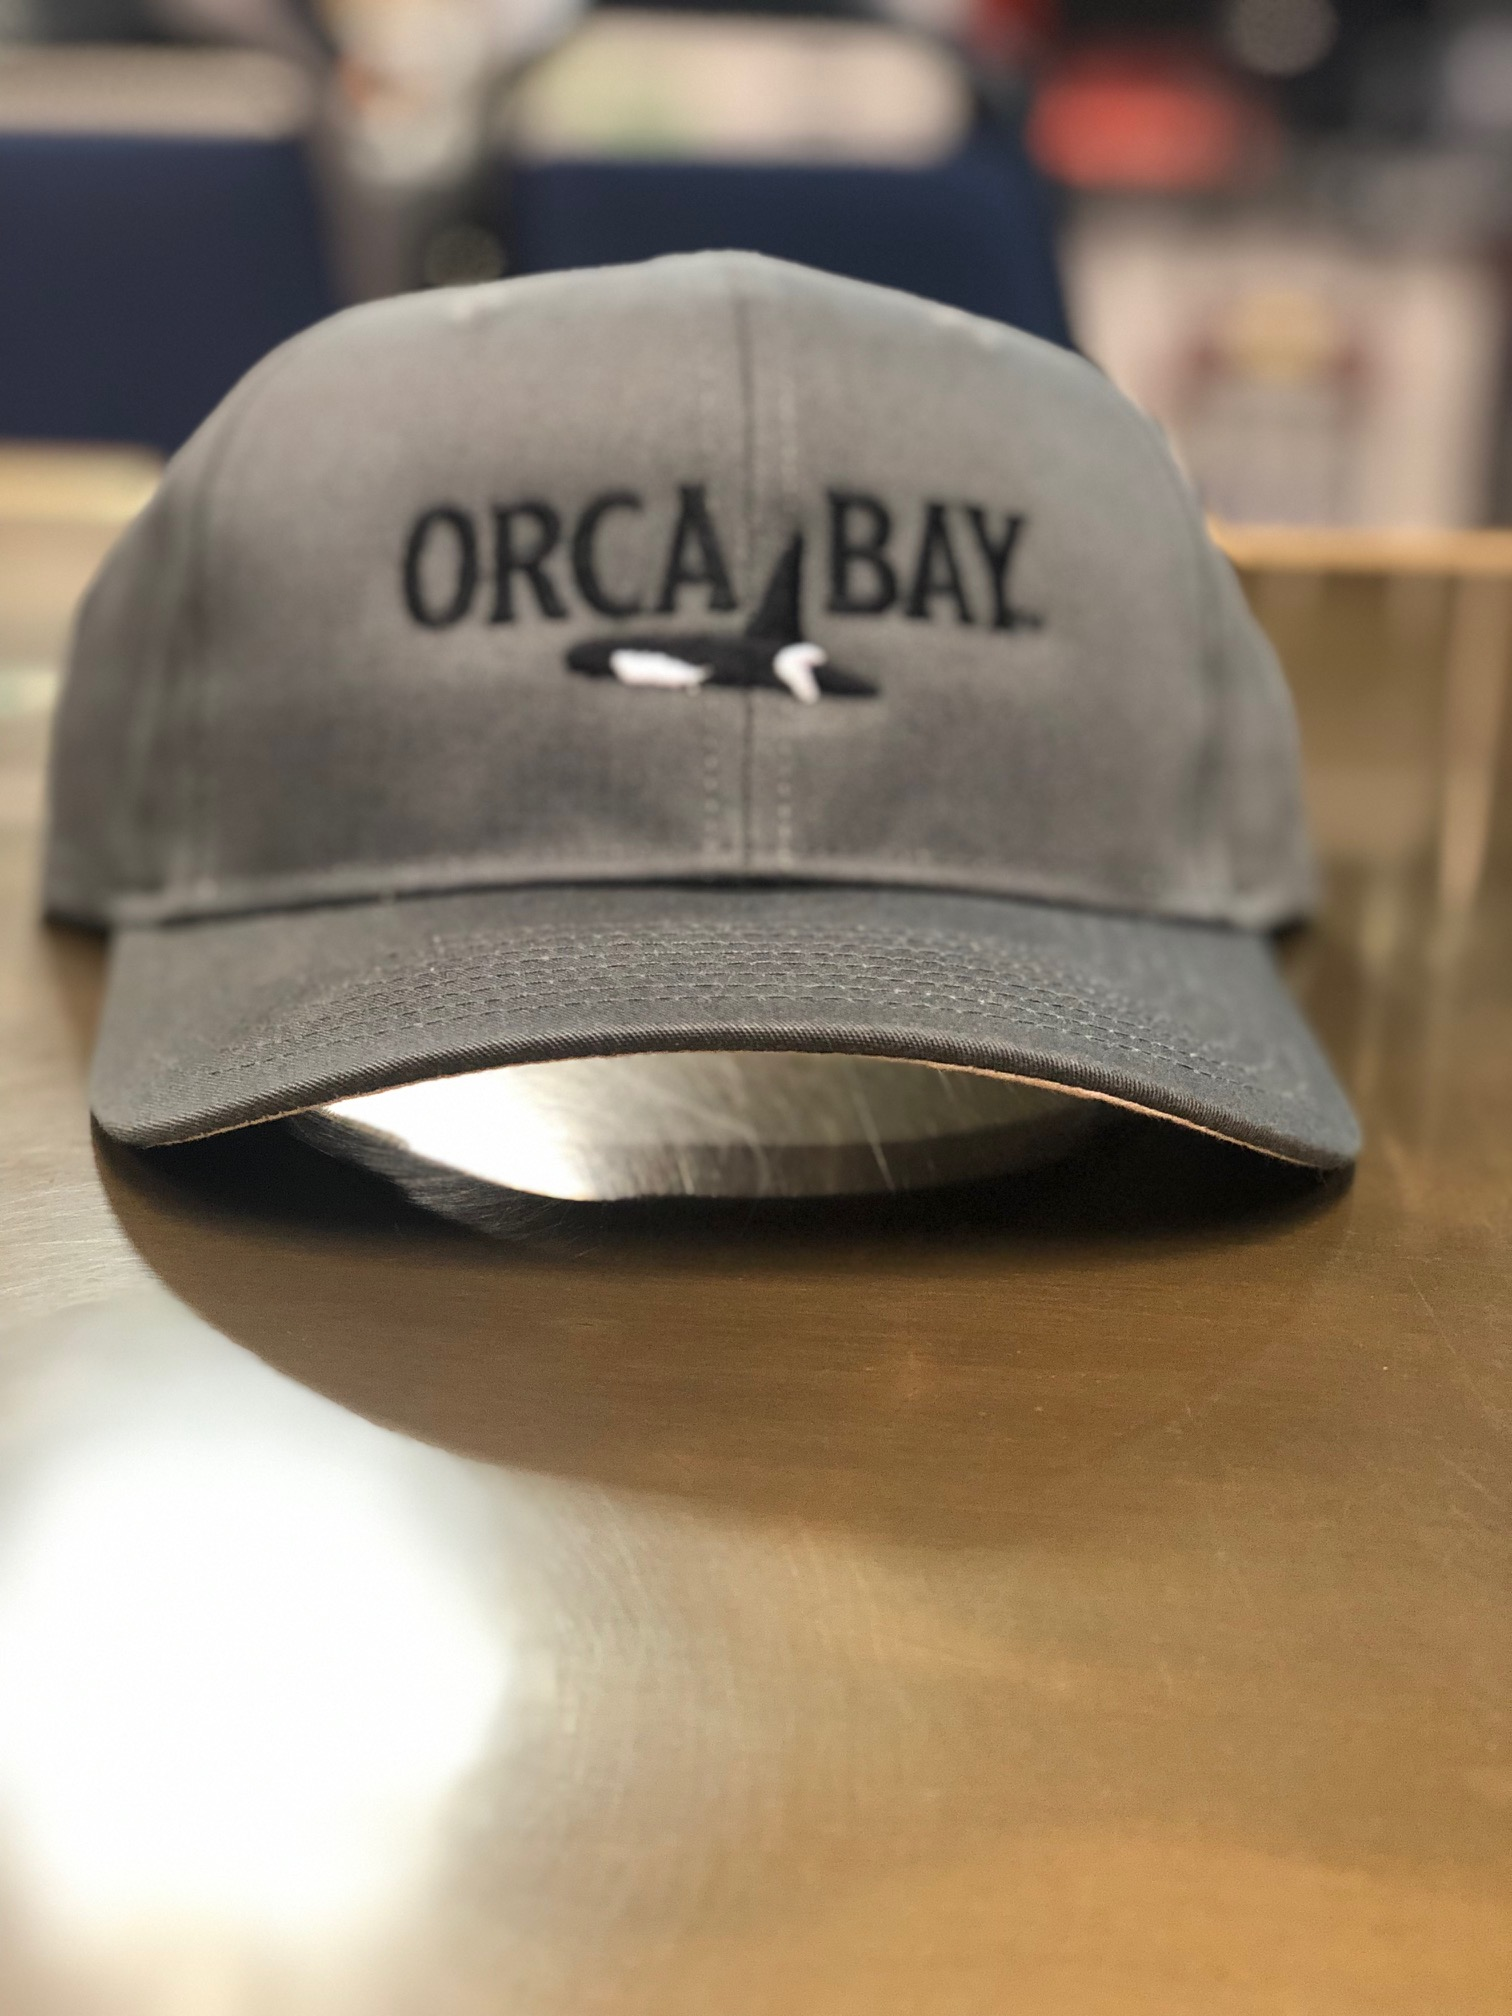 logounltd_laser_etching_embroidery_screen_printing_apparel_uniform_custom_tshirts_kirkland_bellevue_seattle_redmond_woodinville_branded_merchandise_promotional_products_logo_unltd_hats_orcabay_seafoods (2).jpg